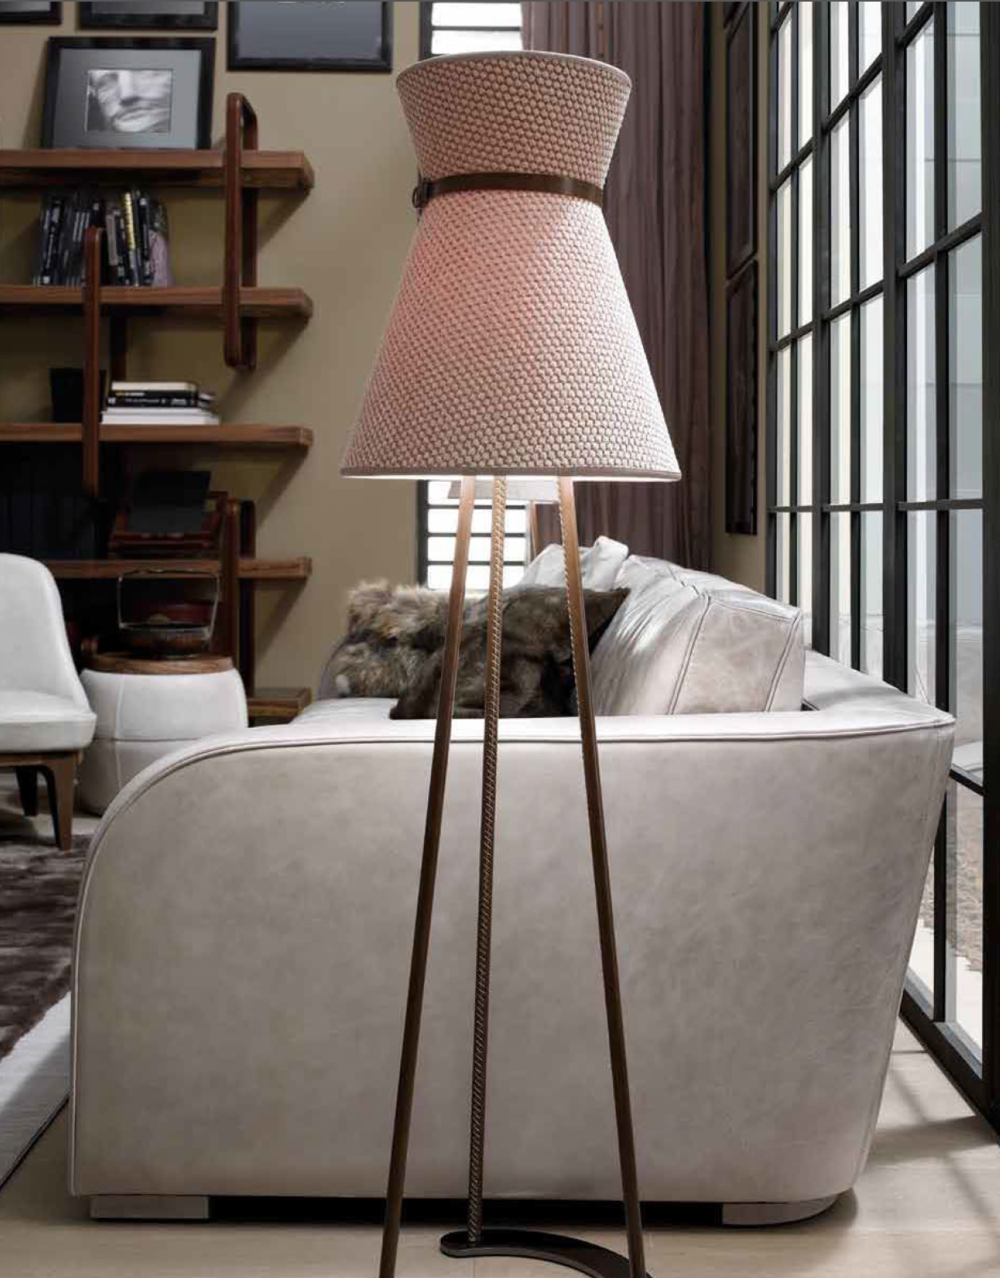 Ulivi Salotti Mademoiselle floor lamp - An Ode to Leathers @ Masha Shapiro Agency.jpg